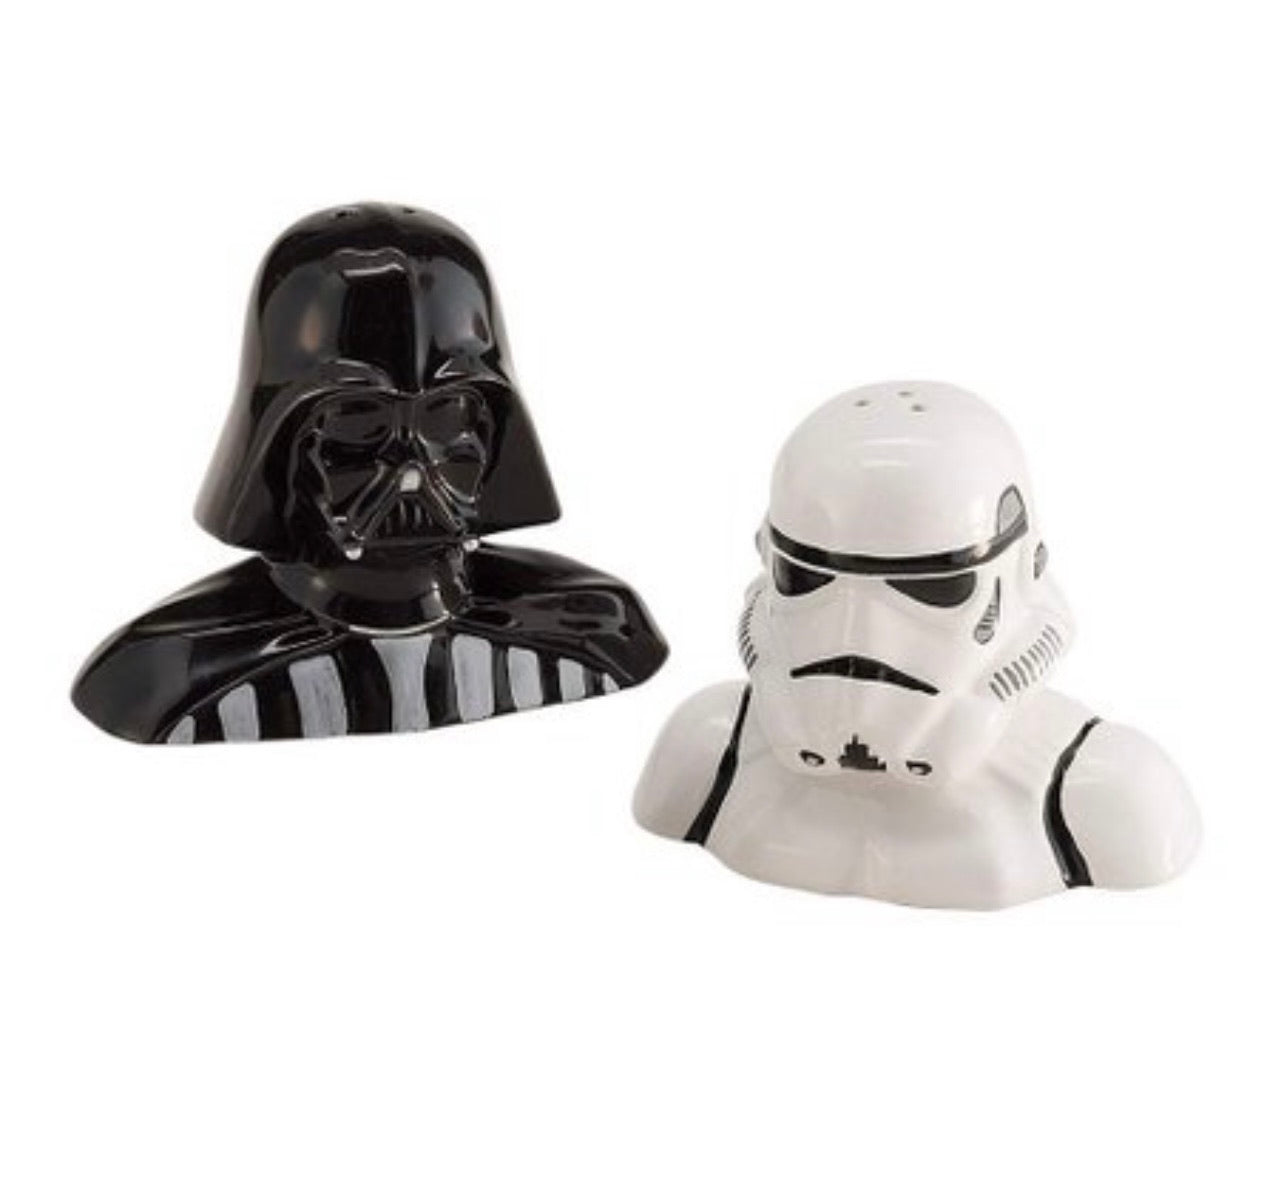 Star Wars Salt & Pepper Shaker